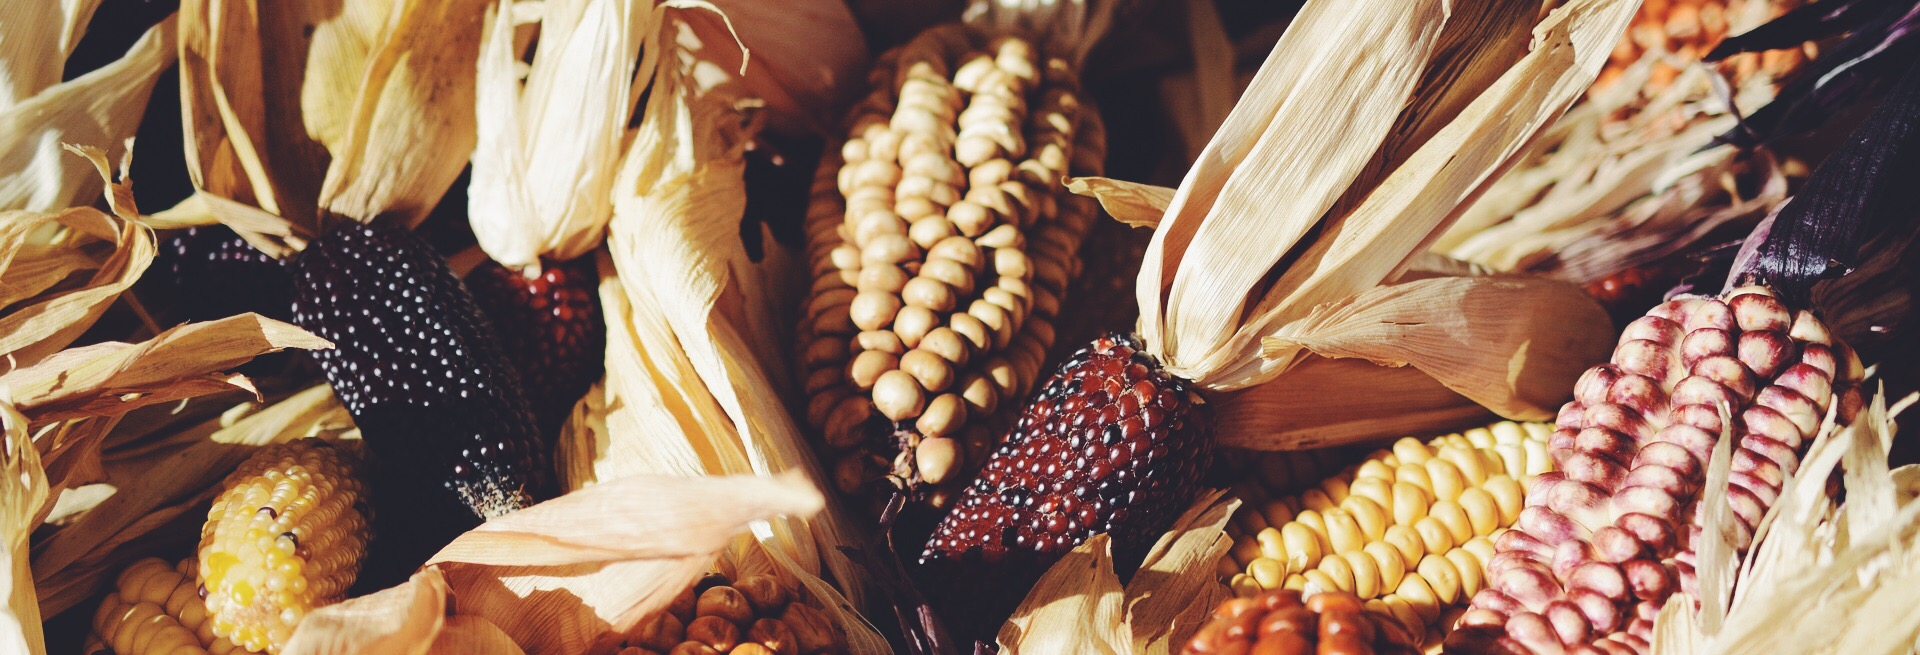 Corn Moon Spirit de la lune | Full Moon Corn Husk Ritual